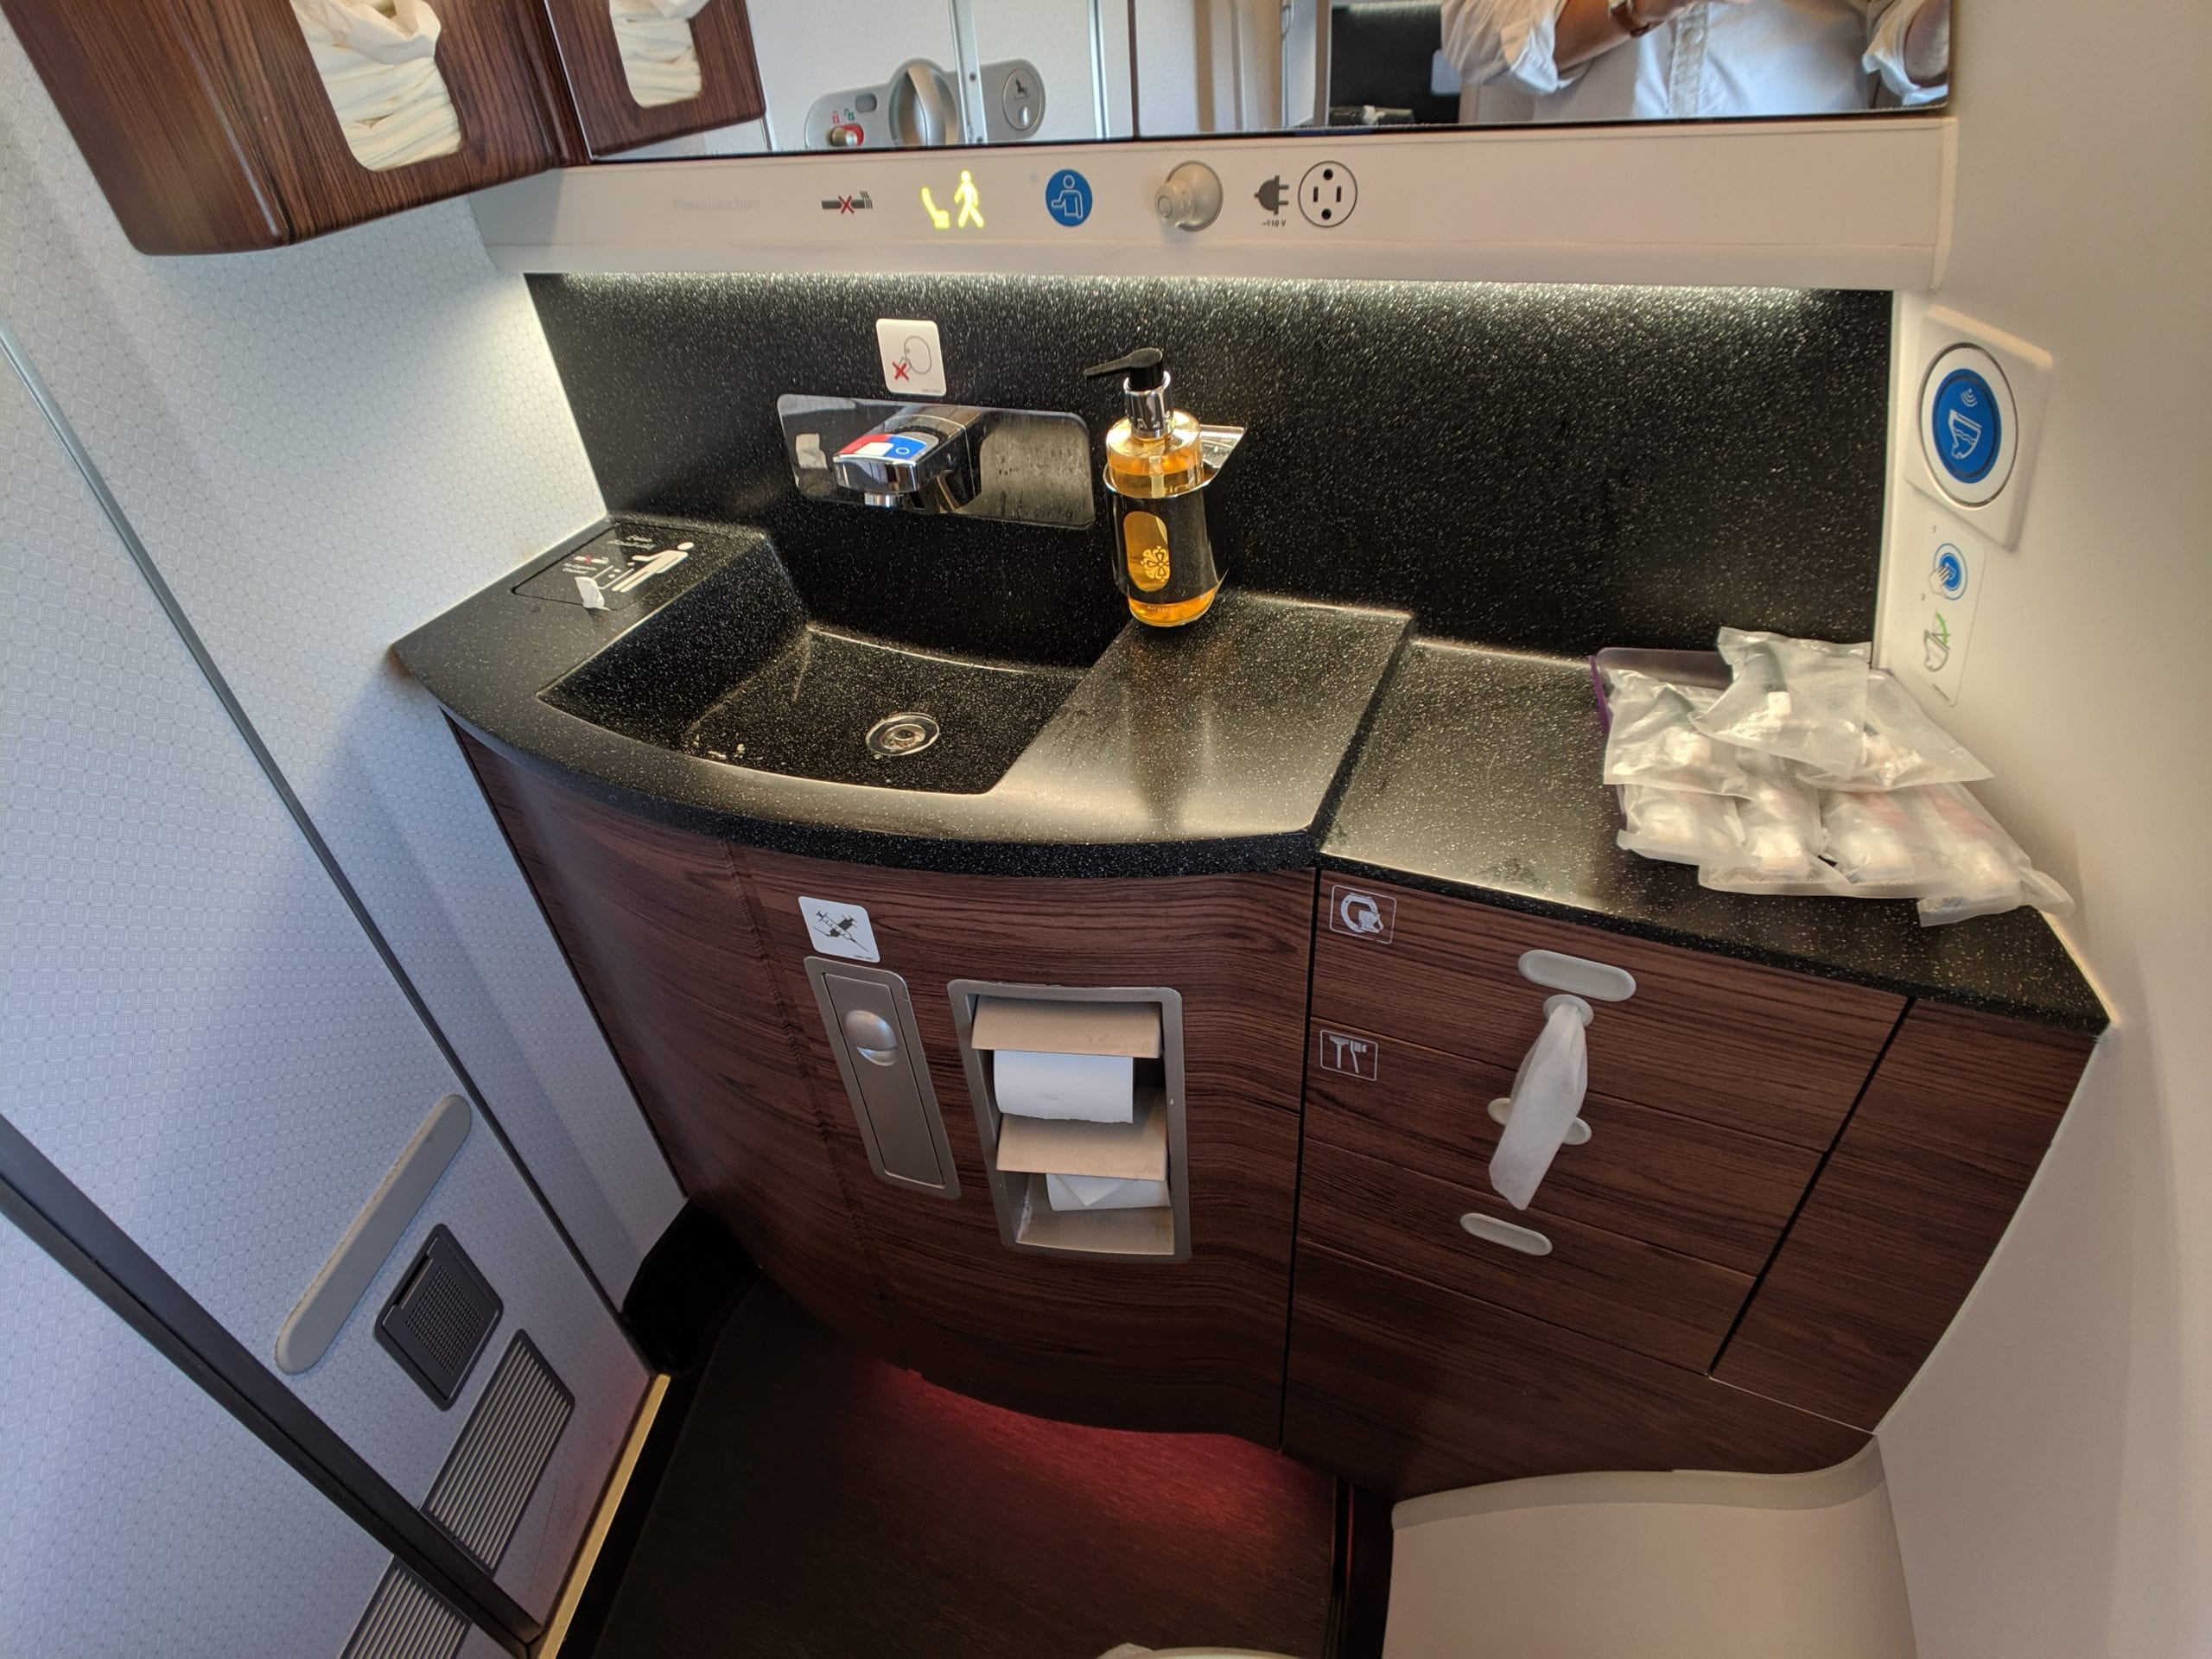 qatar airways qsuite bathroom